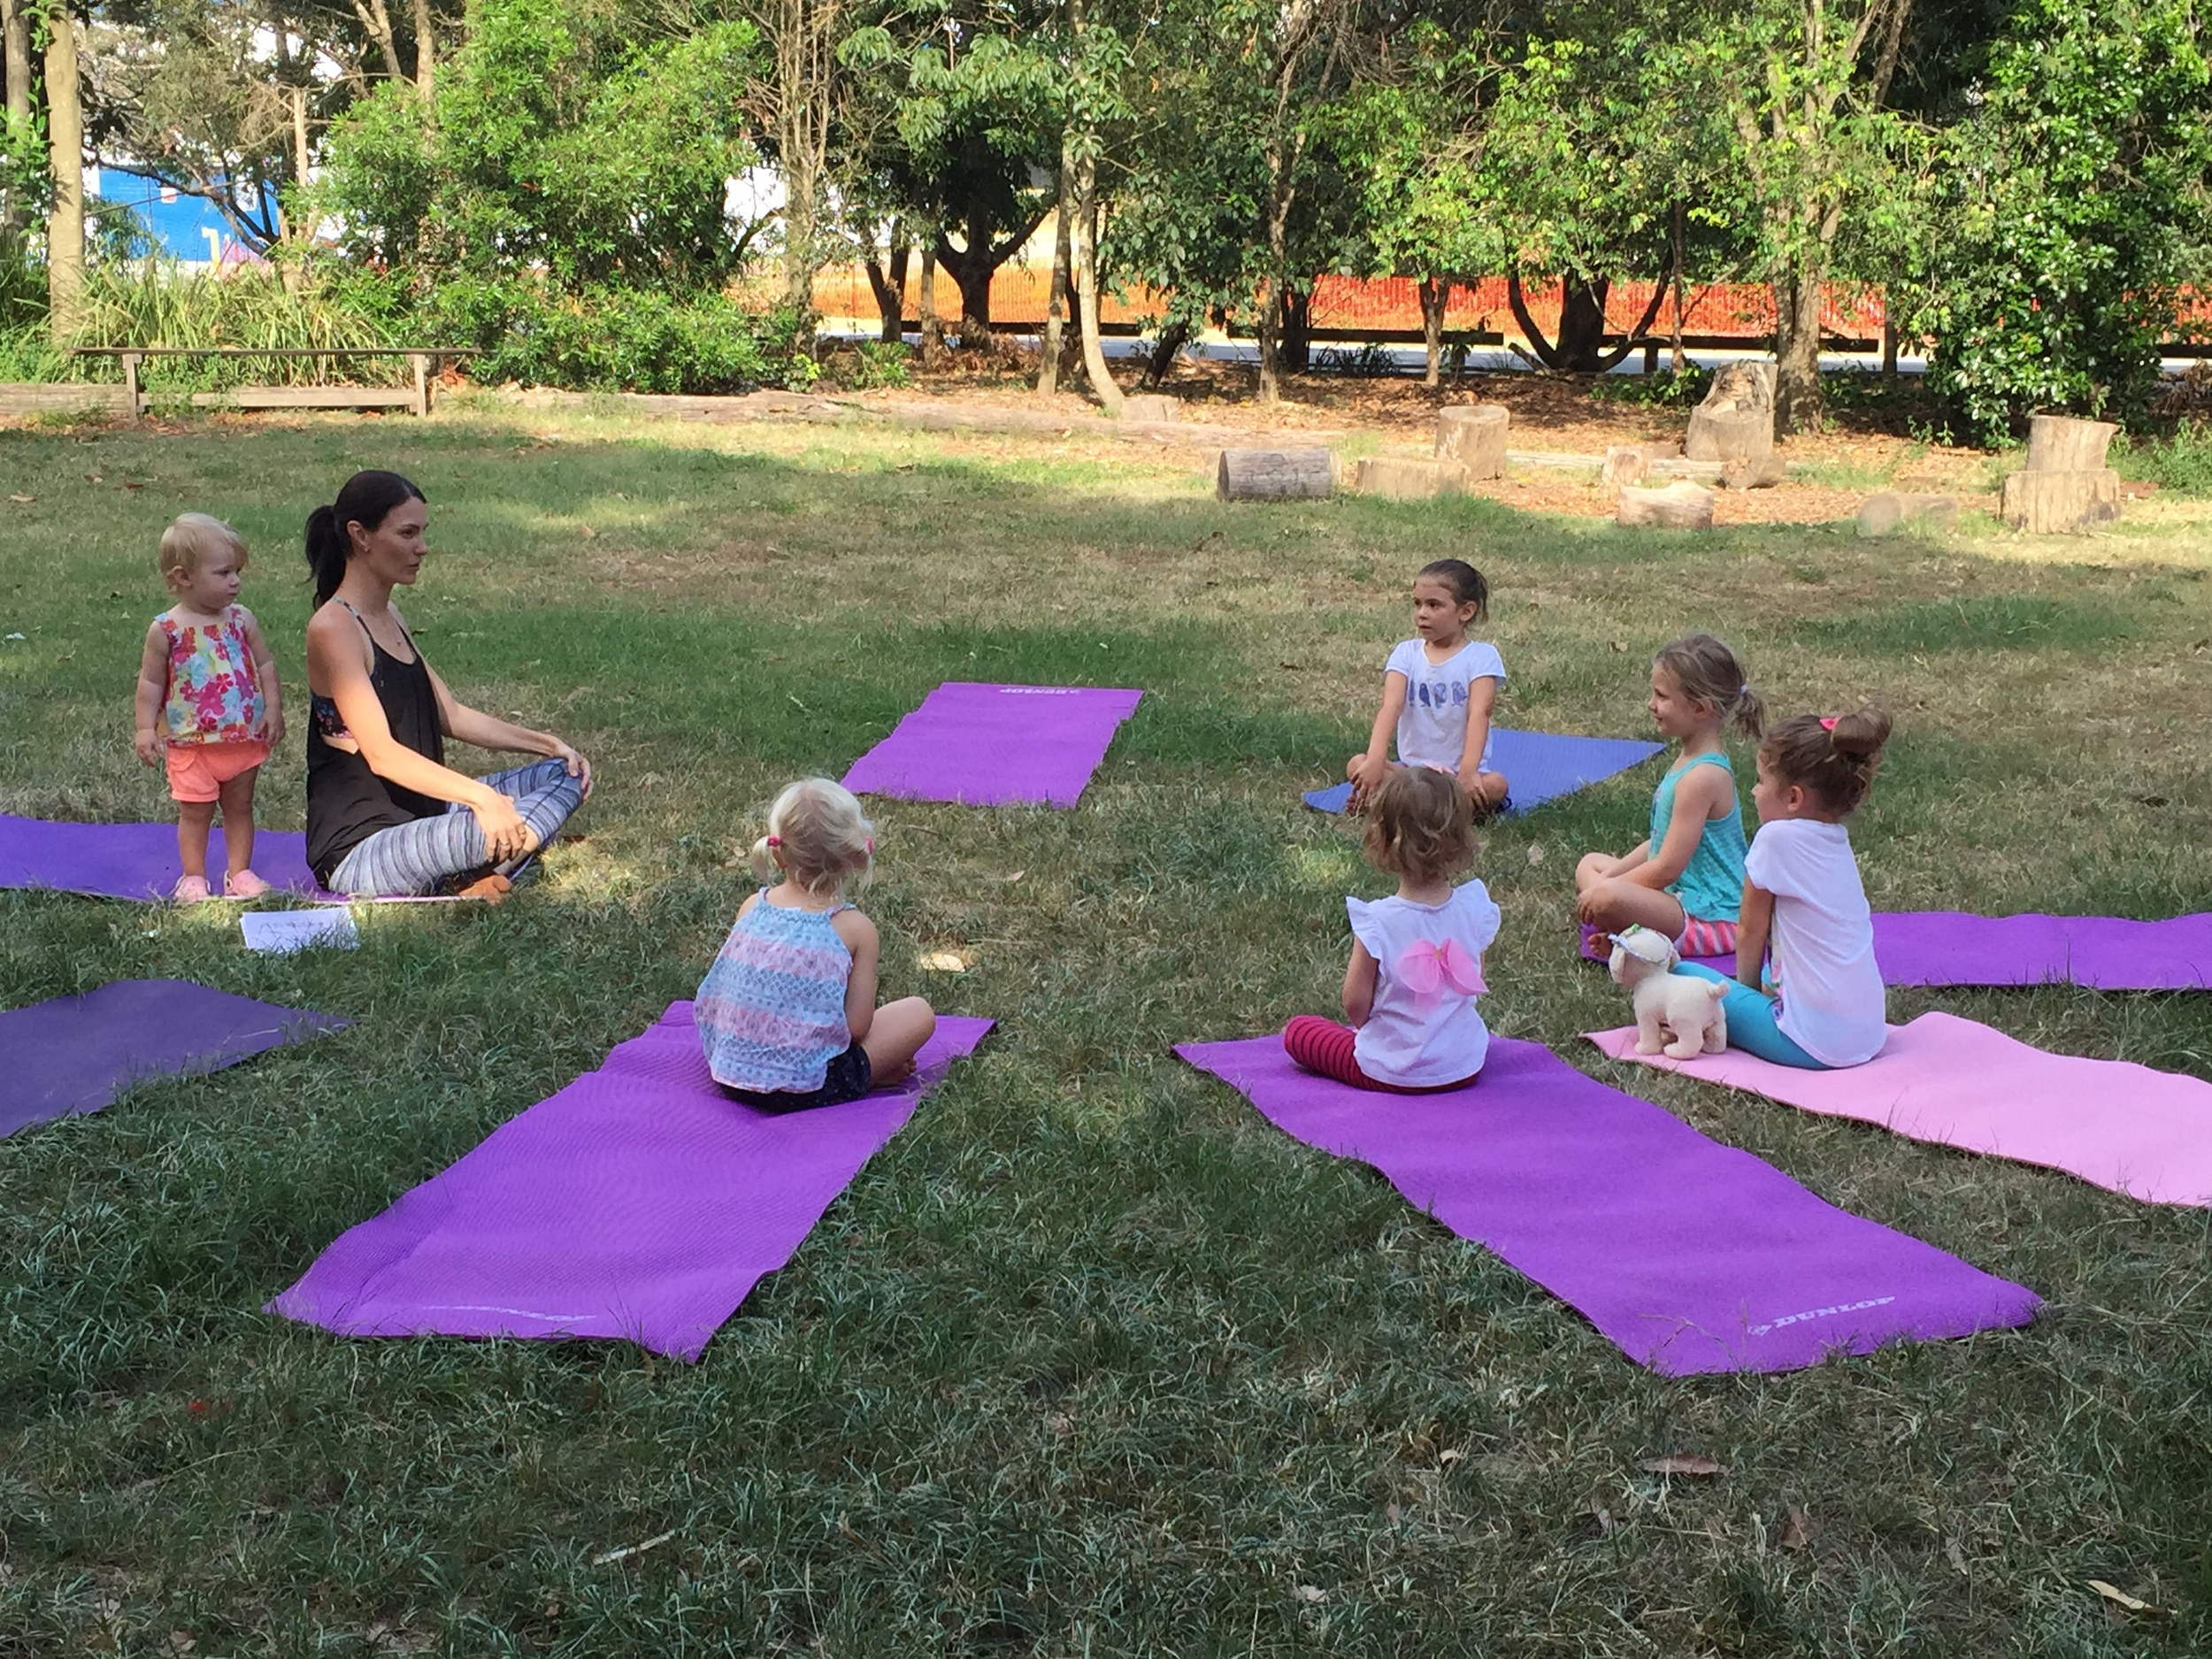 Yoga class begins - lots of concentration!